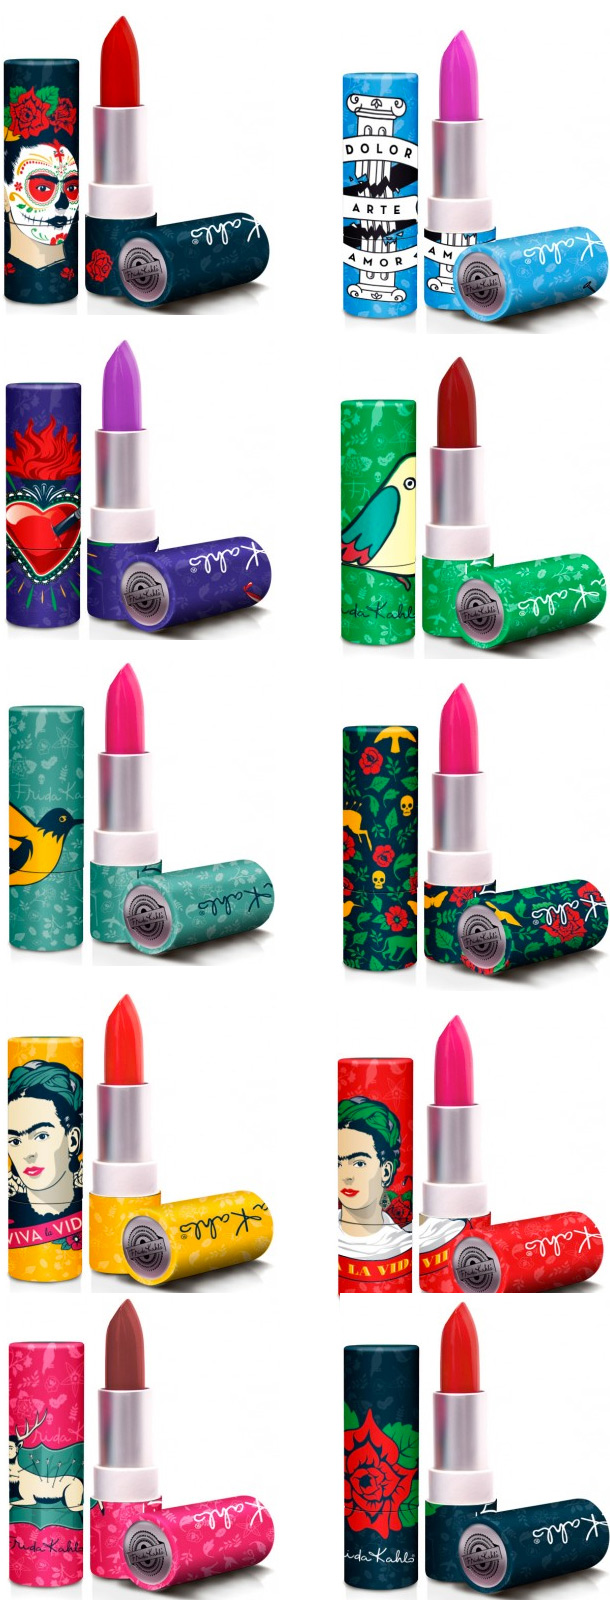 republic nail frida kahlo lipsticks